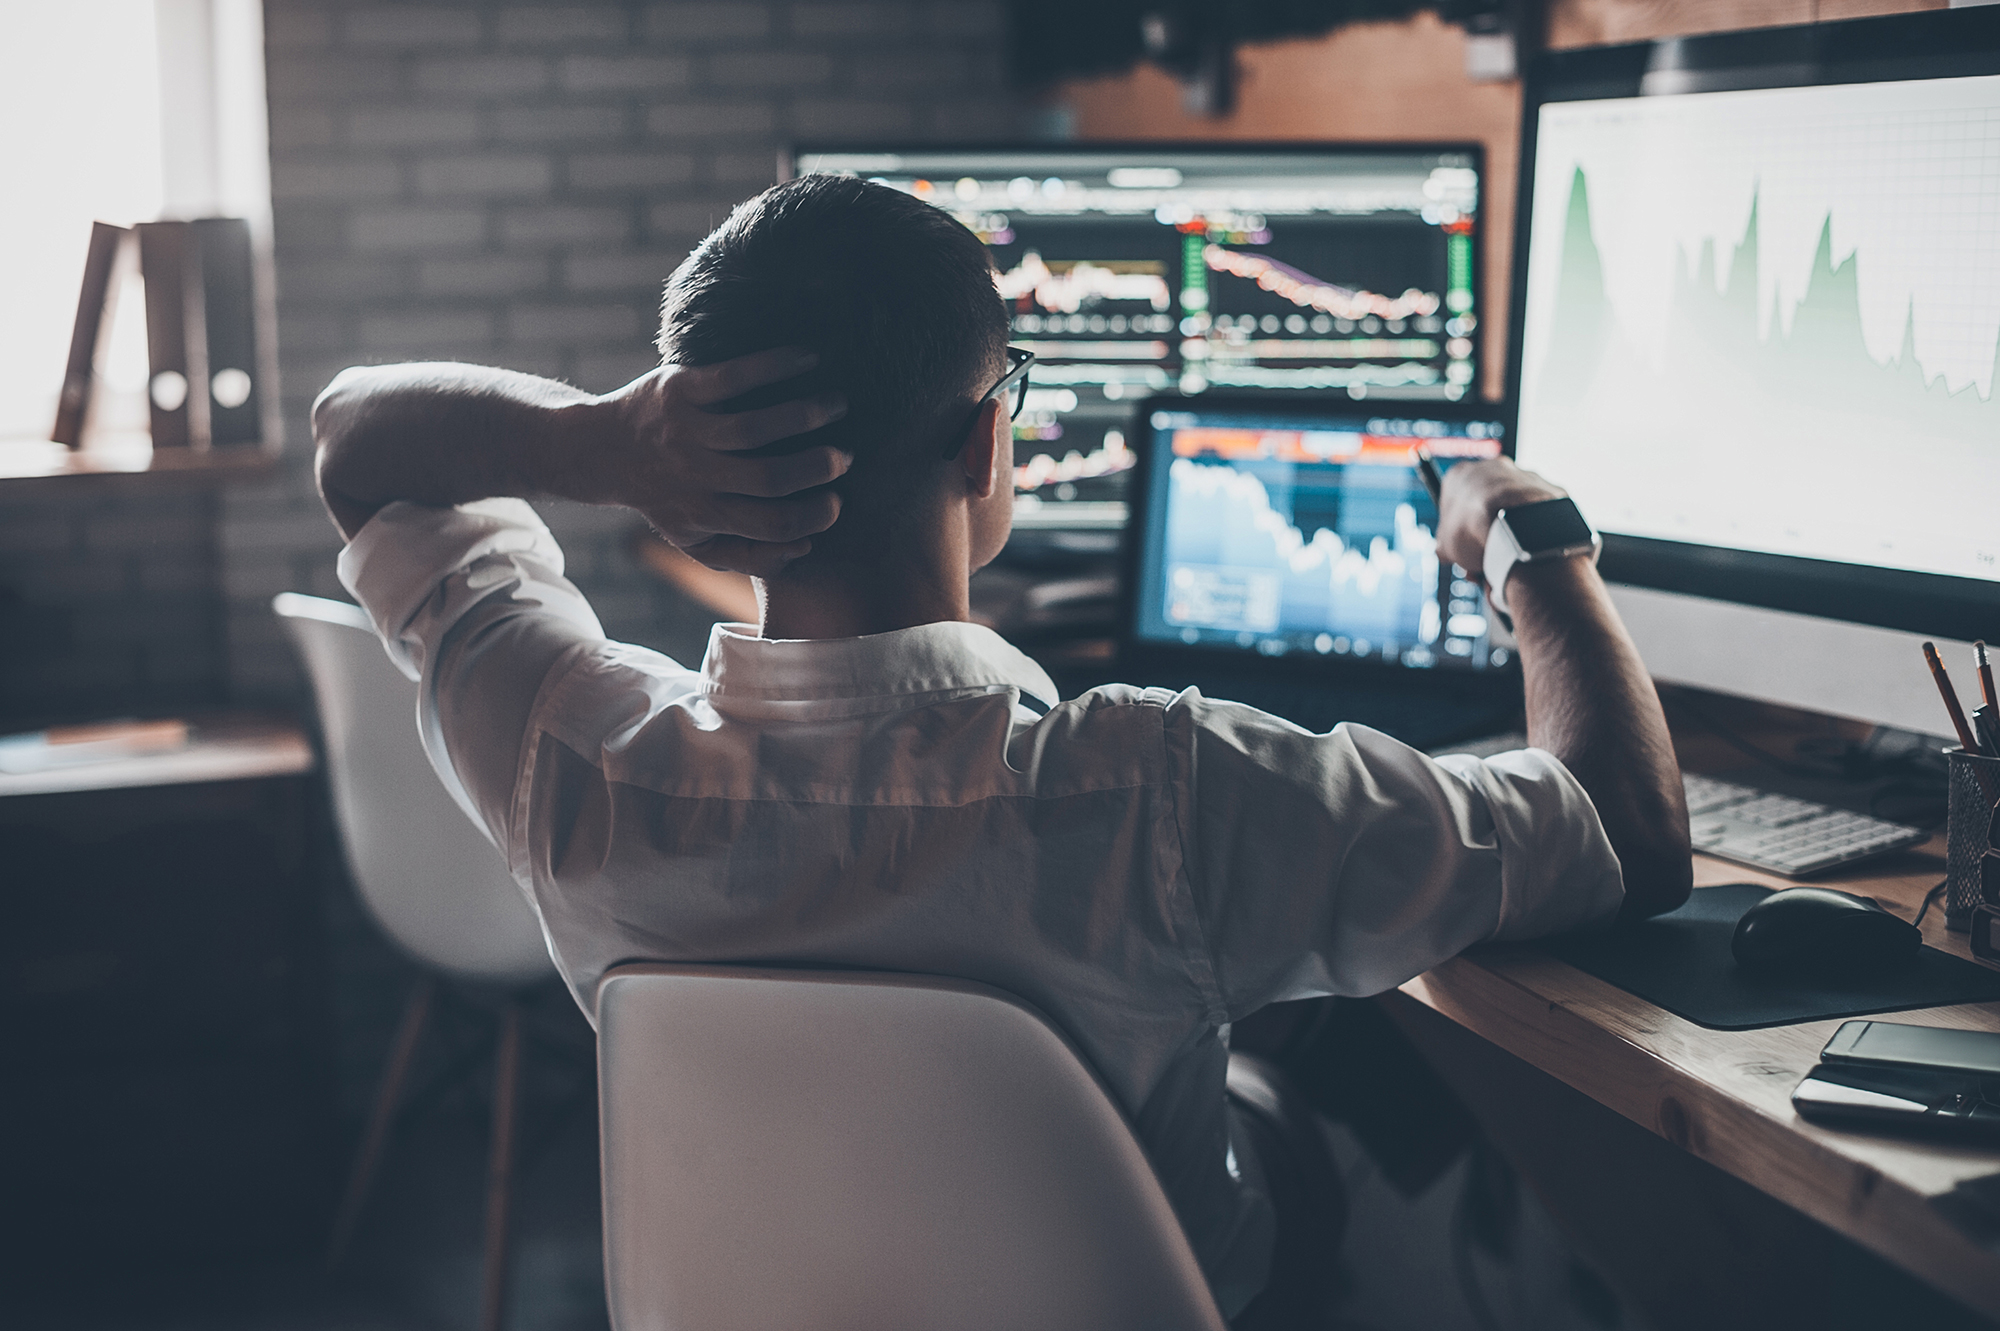 Man at desk looking at investments. (Image: Shutterstock)